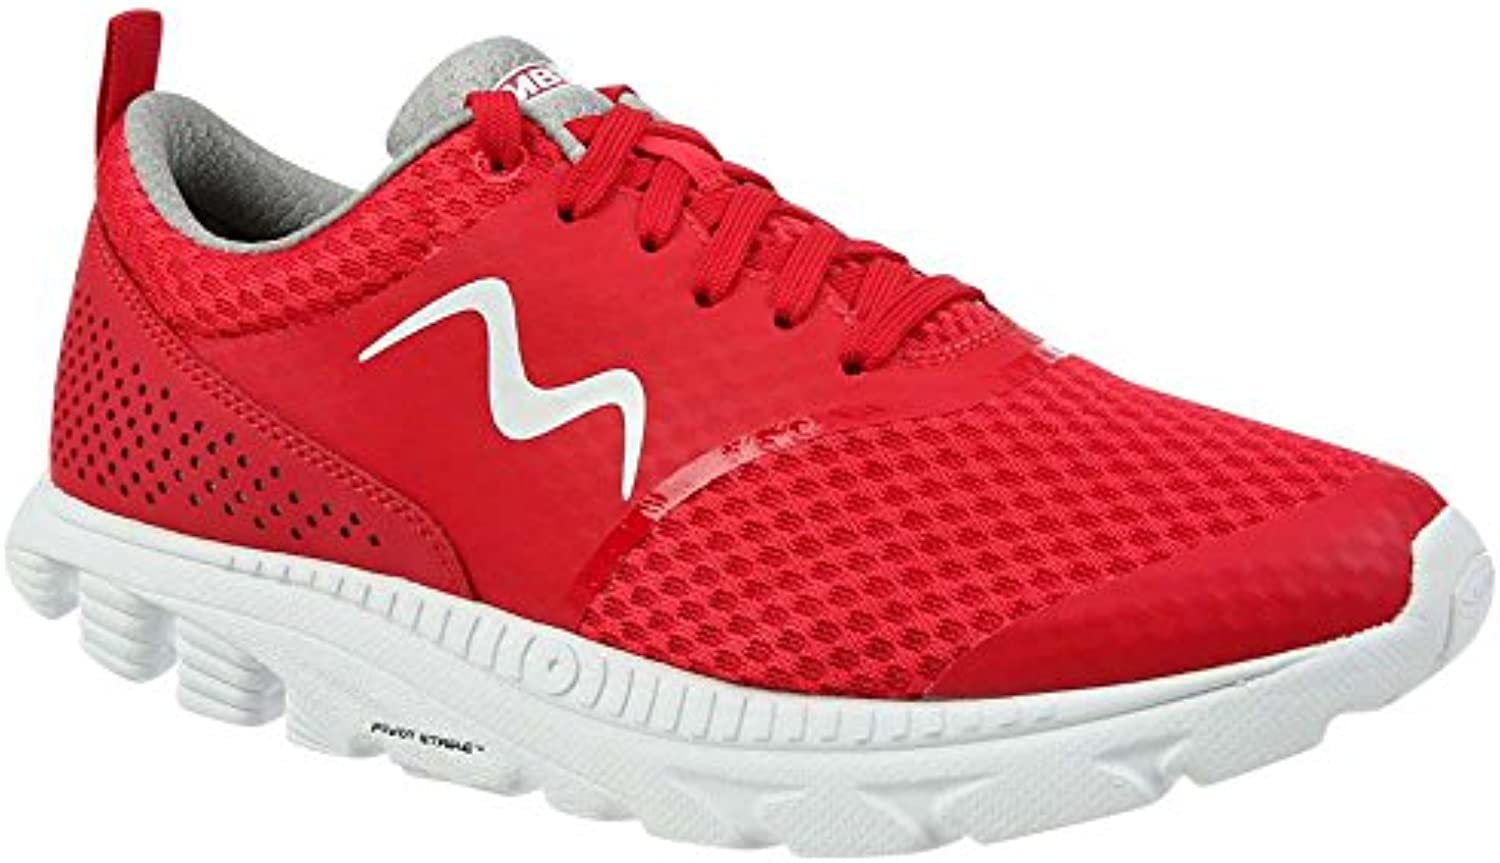 ZAPATILLA MBT 700898-06Y SPEED 17 W ROJO